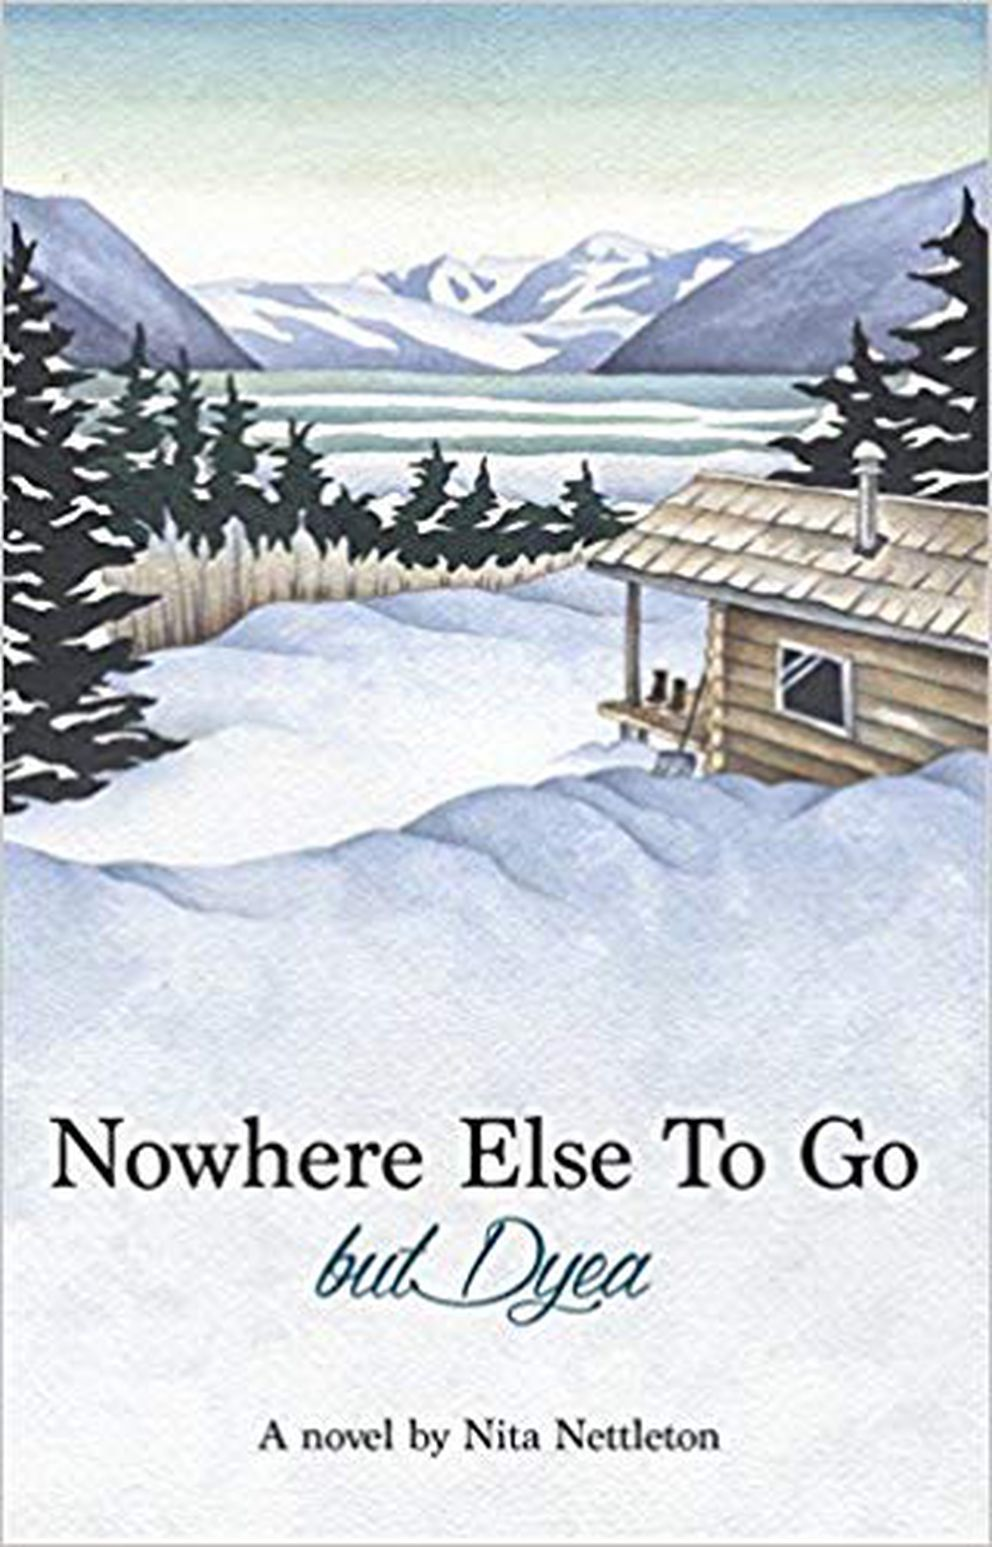 """Nowhere Else to Go, but Dyea,"" by Nita Nettleton."